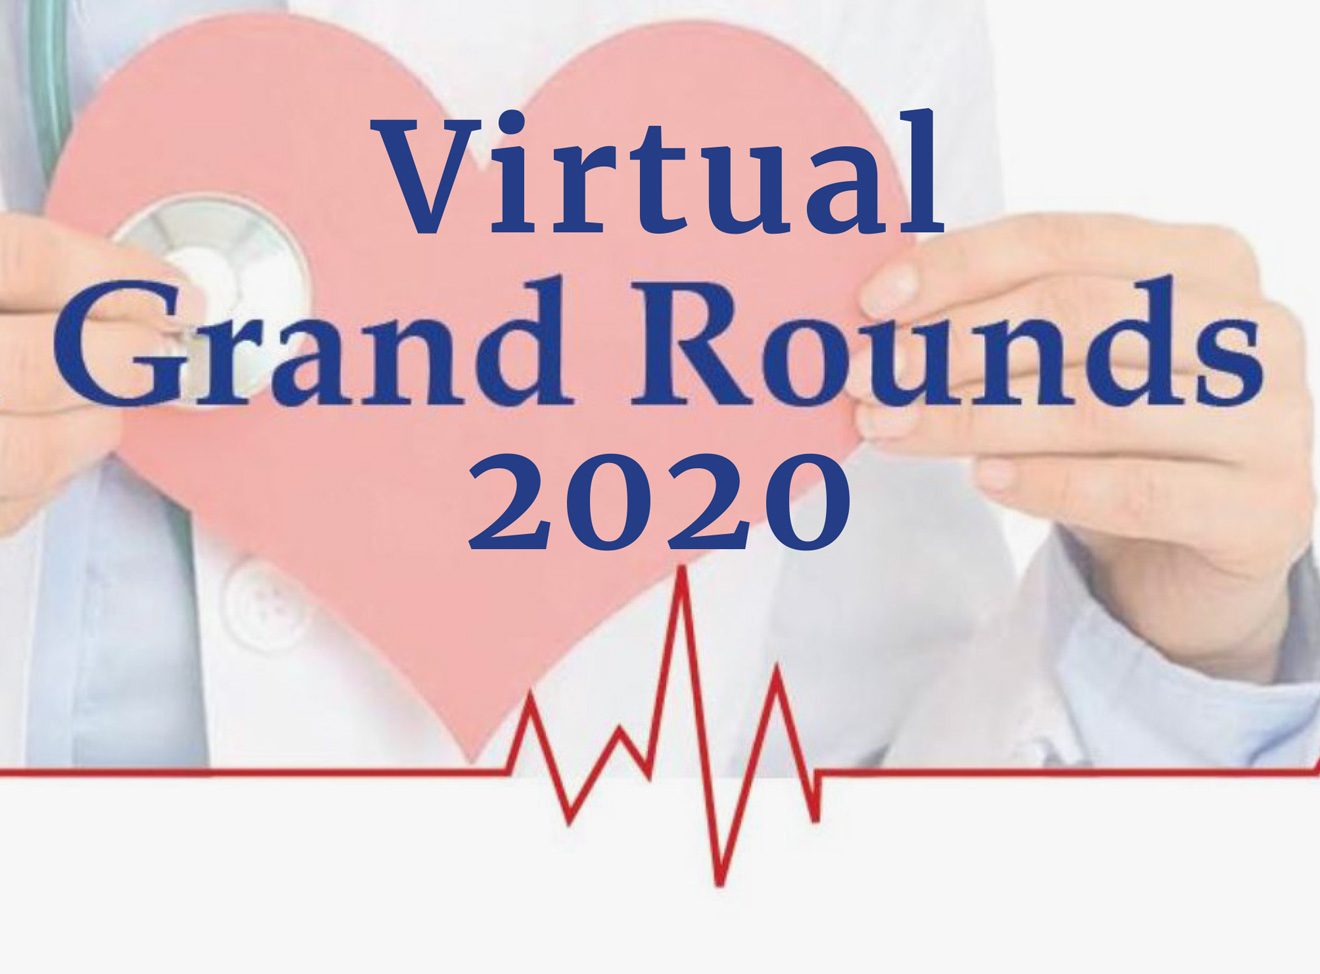 Virtual Grand Rounds 2020